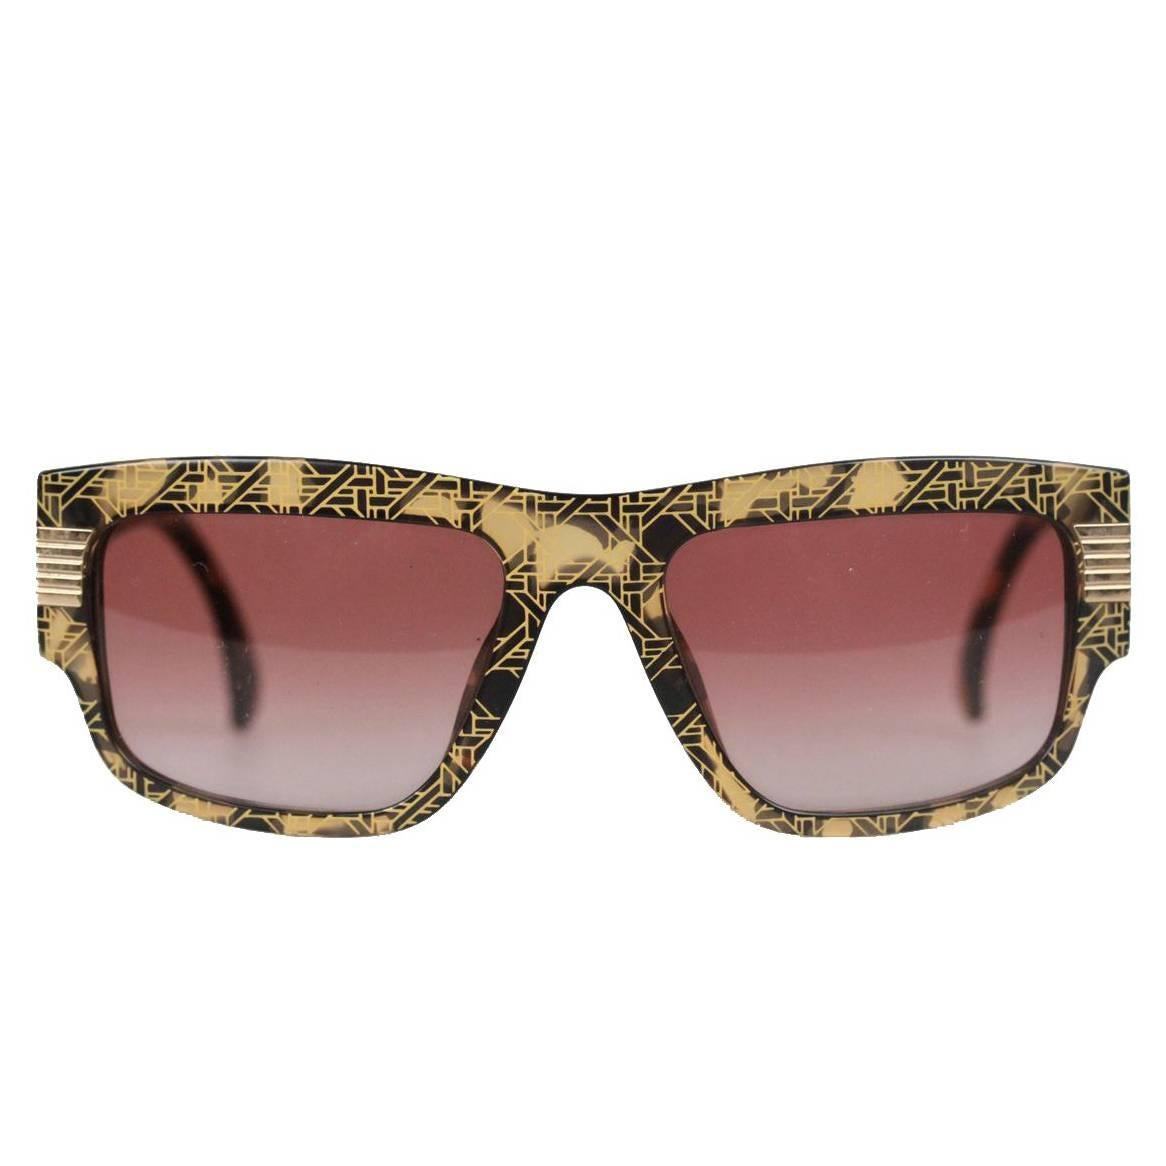 d80bee40867 1950s Sunglasses - 27 For Sale at 1stdibs